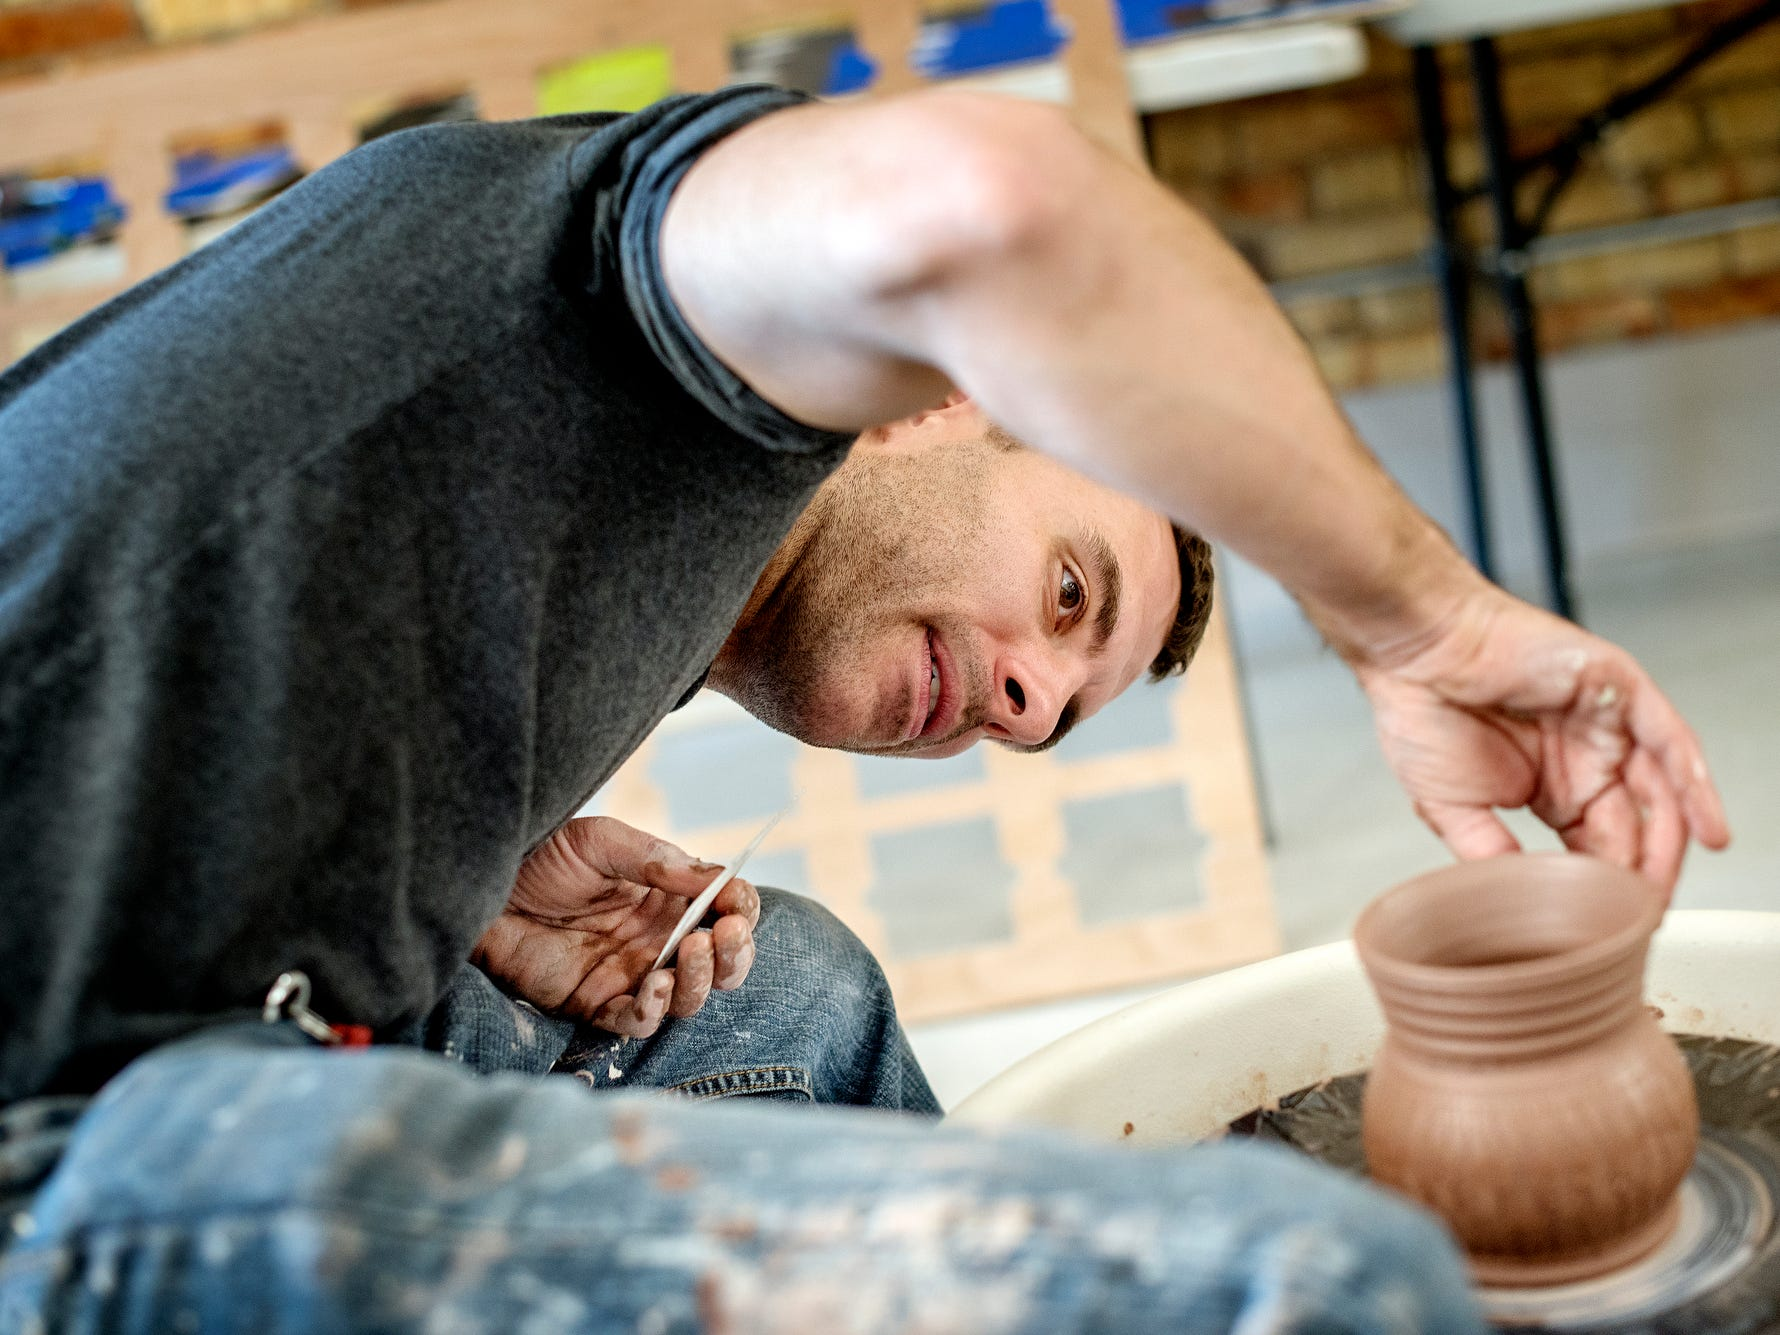 Dan Nunez works on a piece at the Wheel House Studio on Wednesday, Nov. 14, 2018, in Lansing. Nunez opened the business in August.